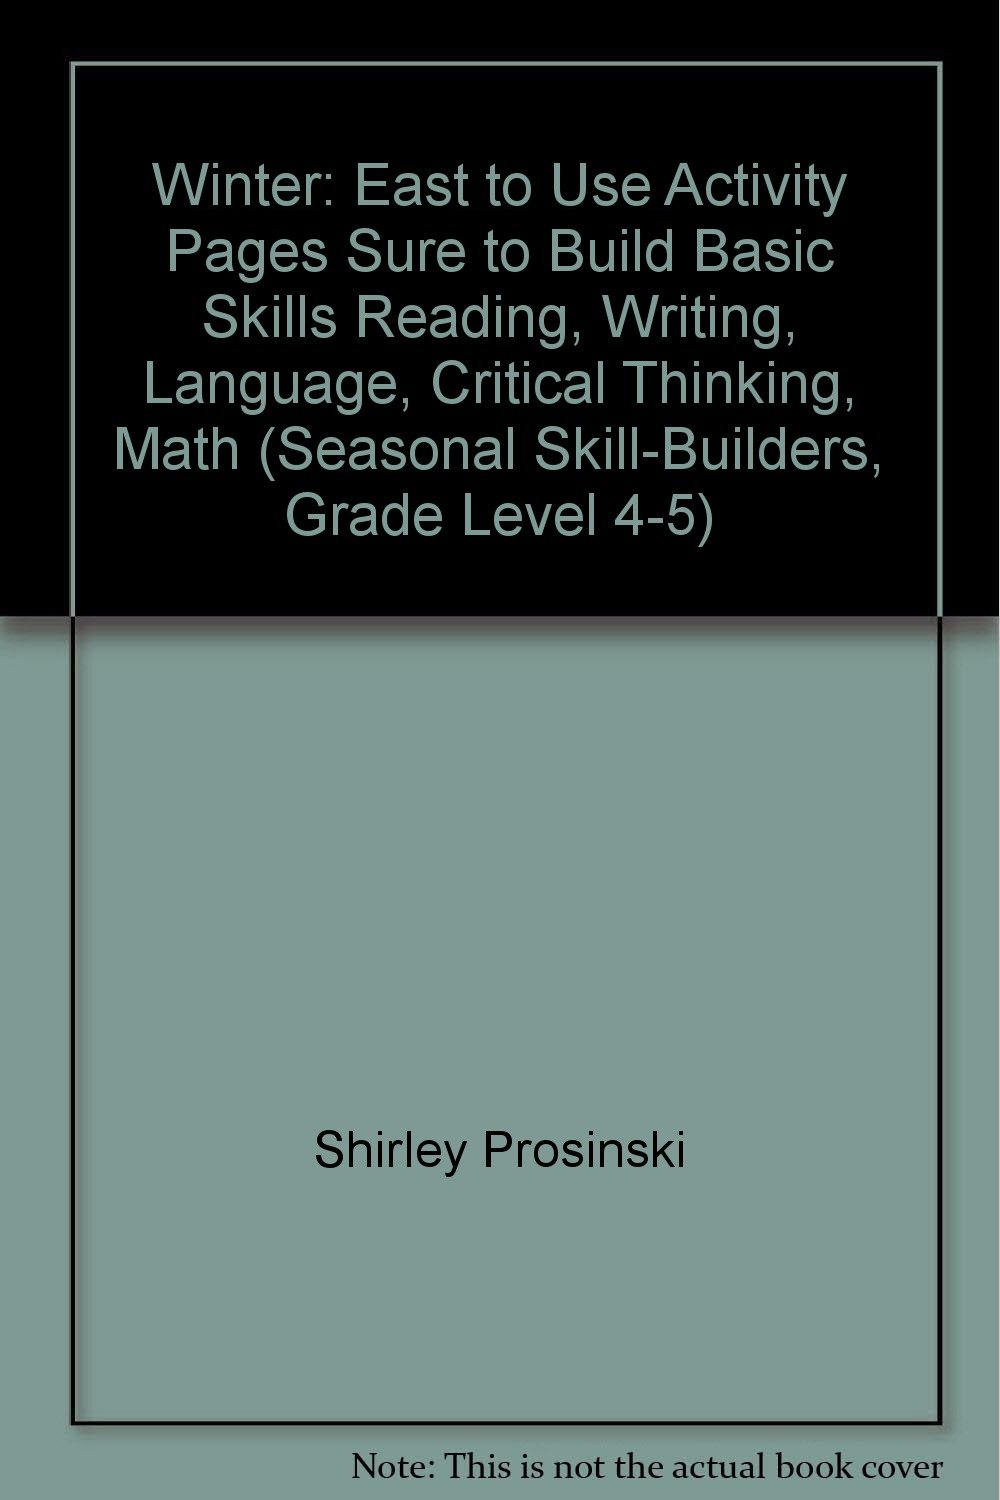 Download Winter: East to Use Activity Pages Sure to Build Basic Skills Reading, Writing, Language, Critical Thinking, Math (Seasonal Skill-Builders, Grade Level 4-5) pdf